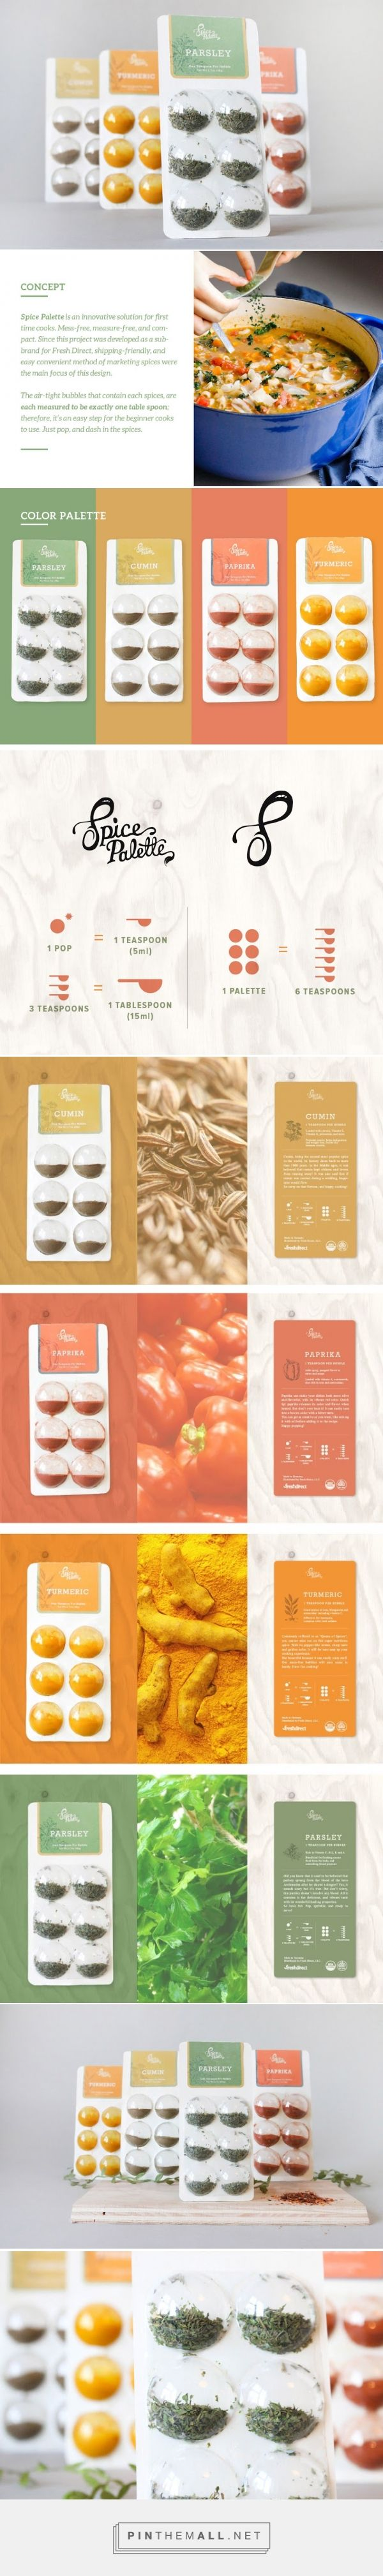 Mess free Spice packaging? Student #concept designed by Risa Takeuchi (USA)…